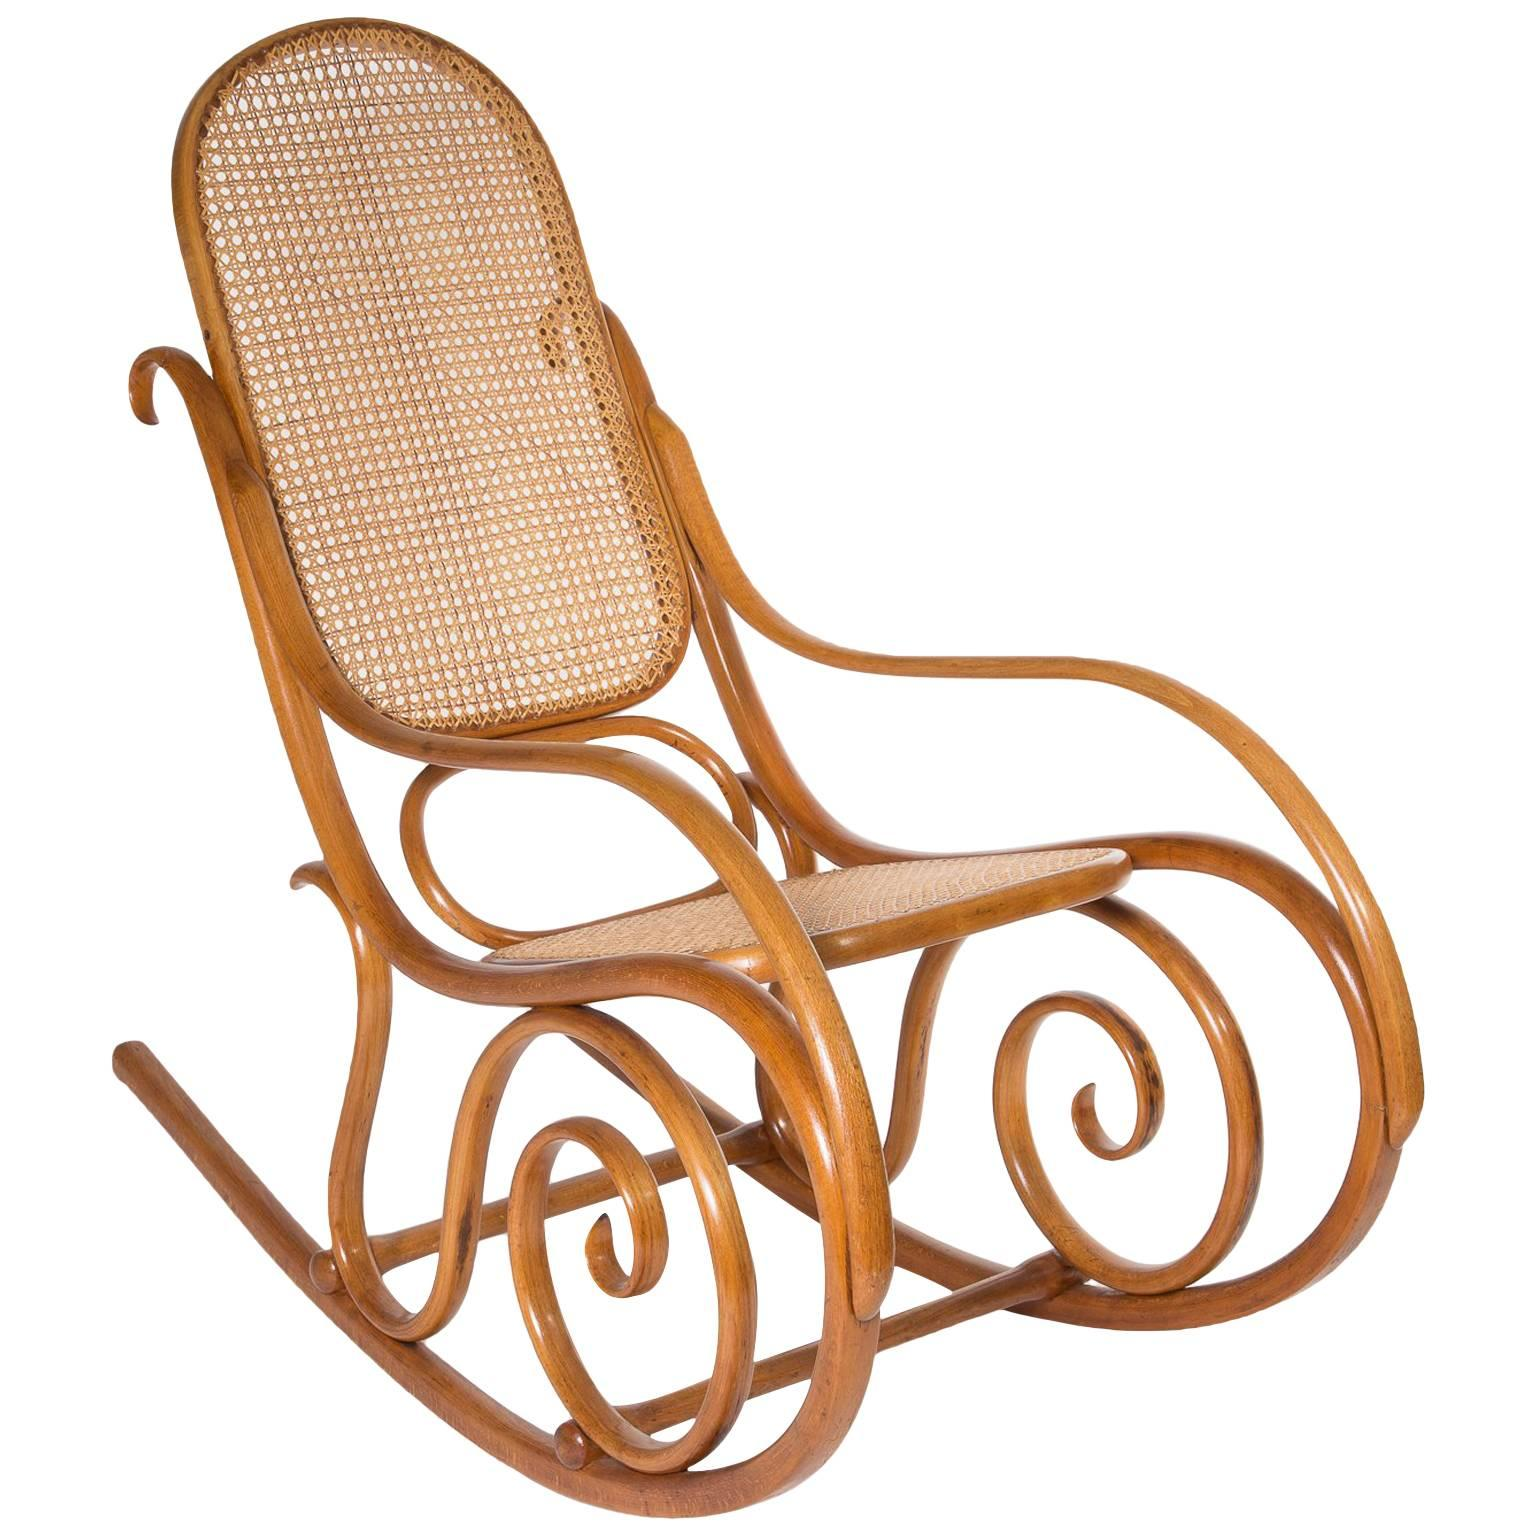 Charmant Jugendstil Thonet No.10 Bentwood Rocking Chair, Austria 1895 For Sale